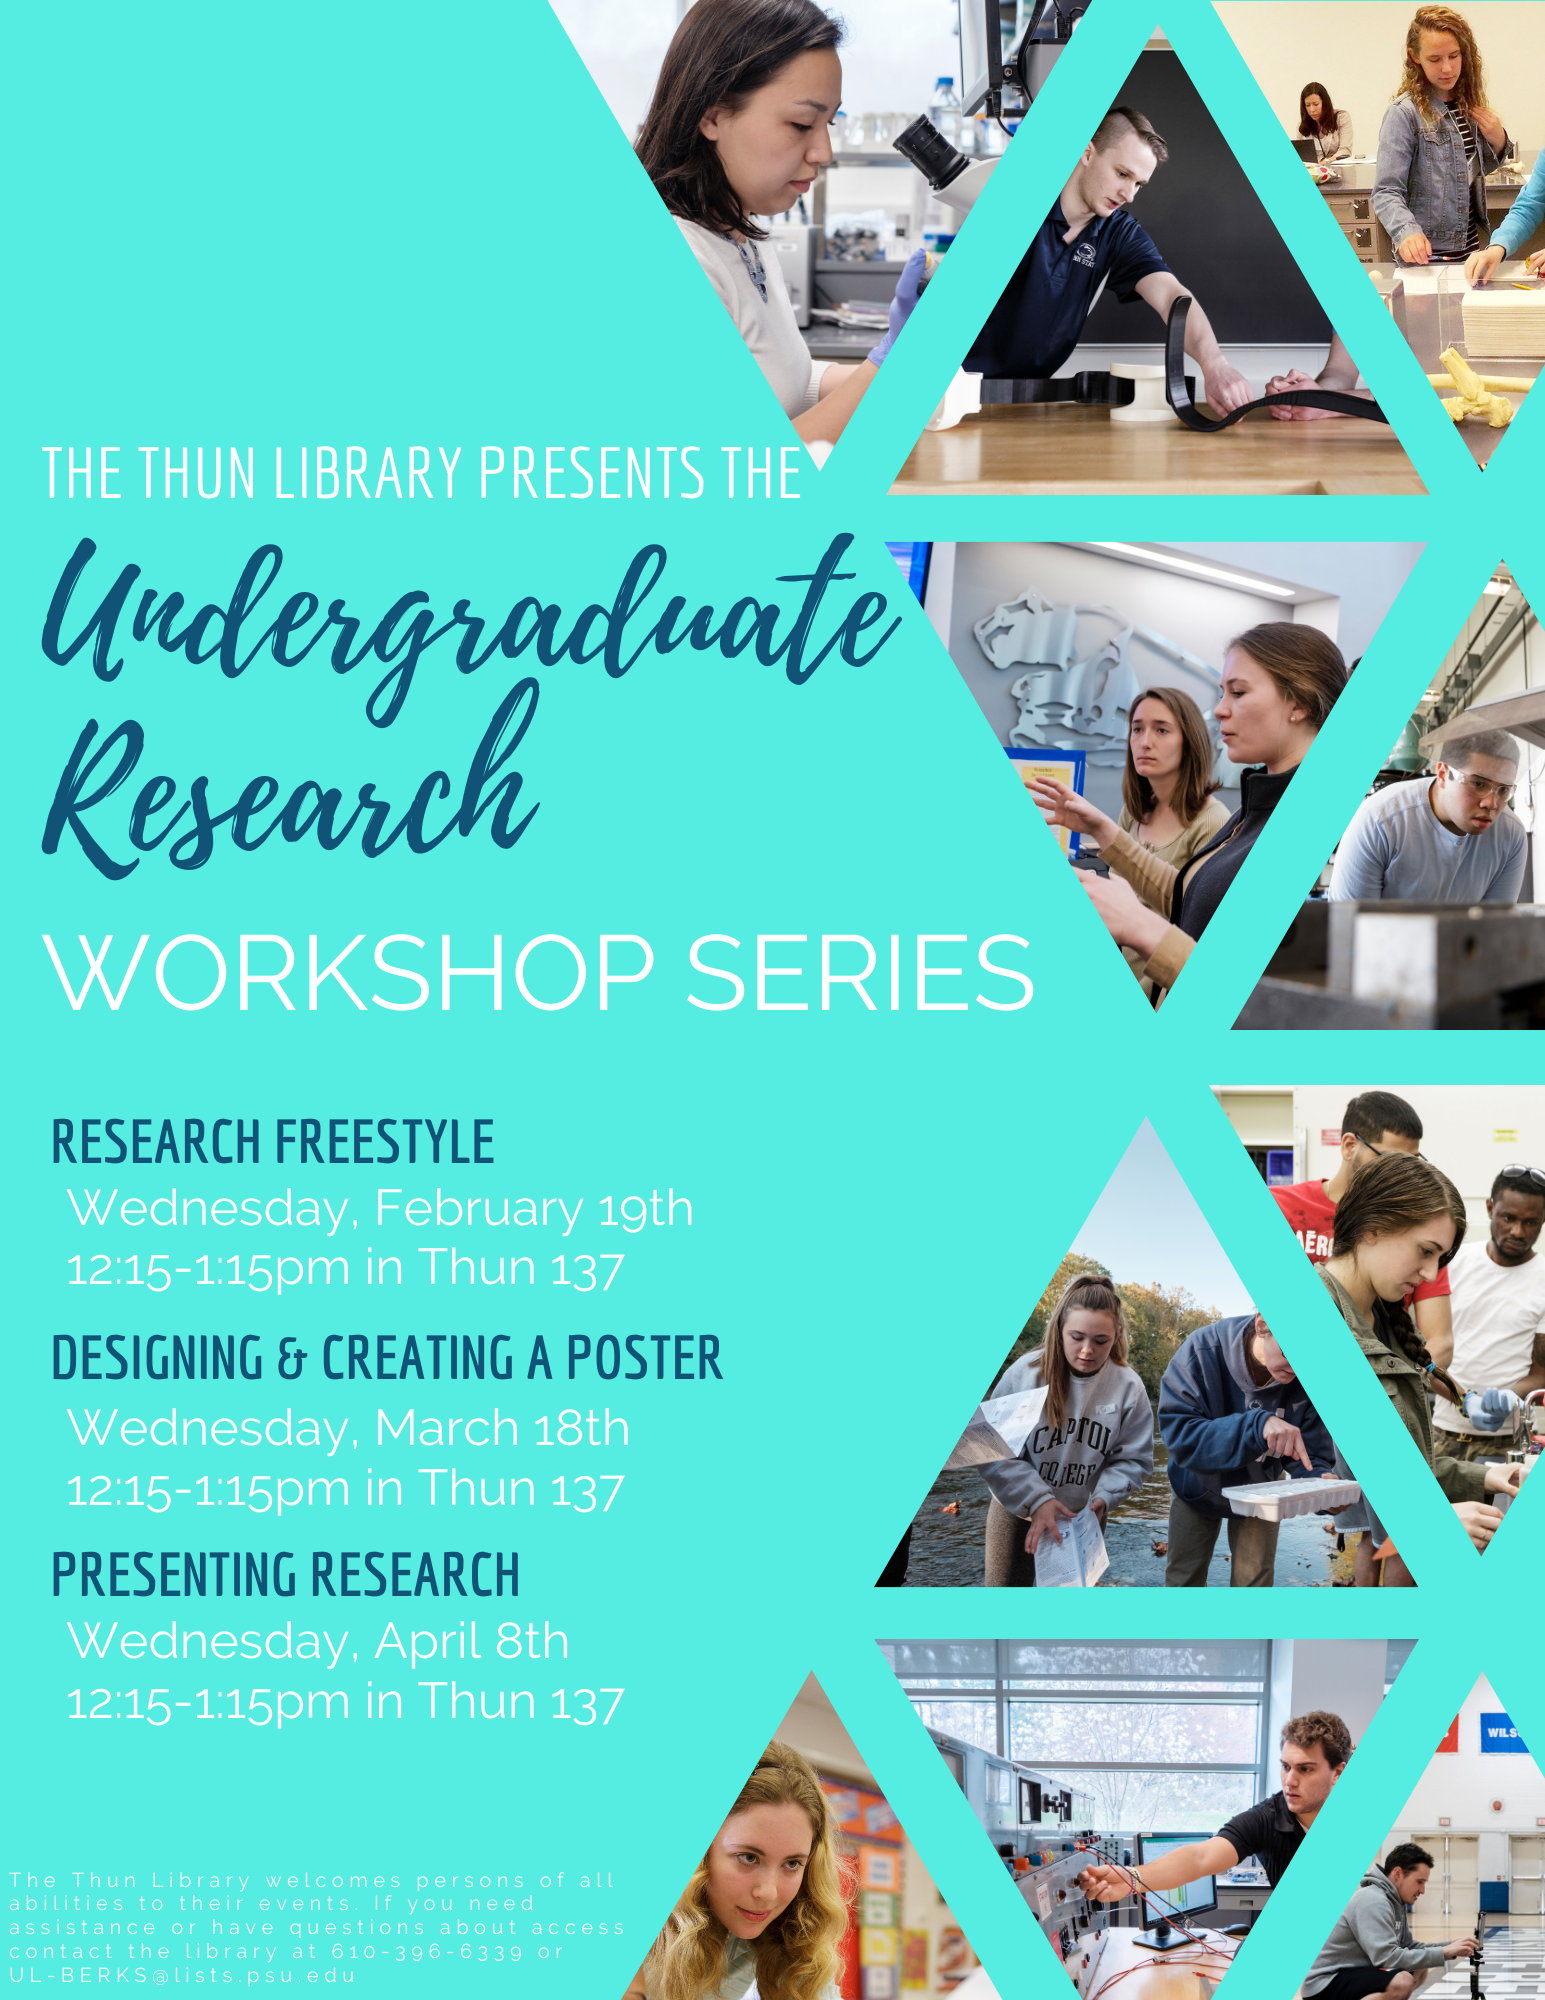 Undergraduate Research Workshops.  Research: Source Discovery & Management, Wednesday 2/19 from 12:15-1:15pm in Thun 137.  Designing & Creating a Poster, Wednesday 3/18 from 12:15-1:15pm in Thun 137.  Presenting Research, Wednesday 4/8 from 12:15-1:15pm in Thun 137.